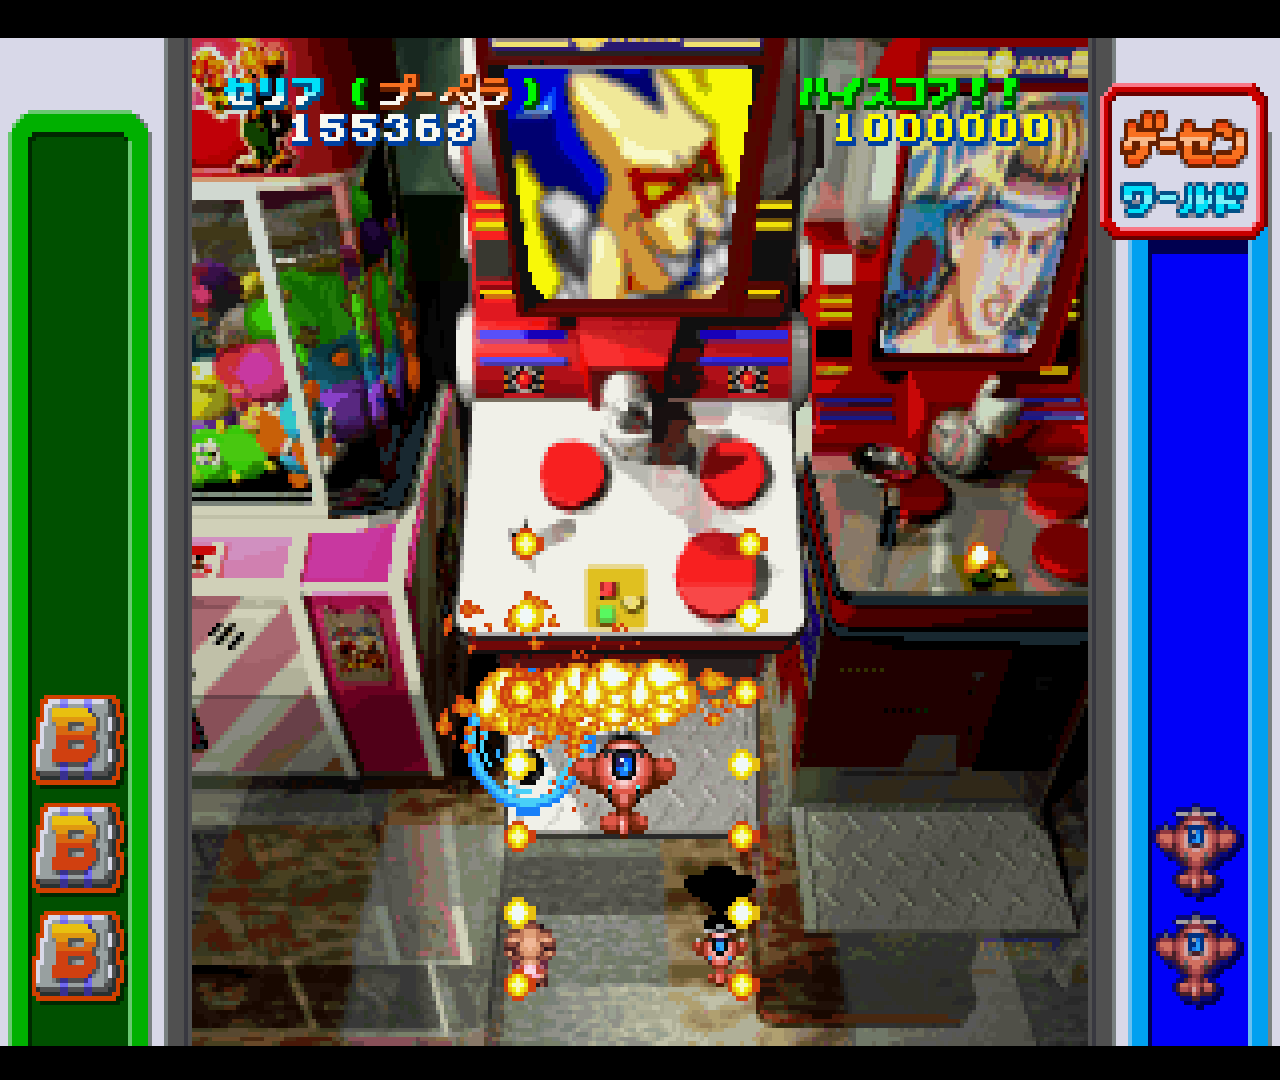 Figure 8 - The first boss is an actual arcade machine